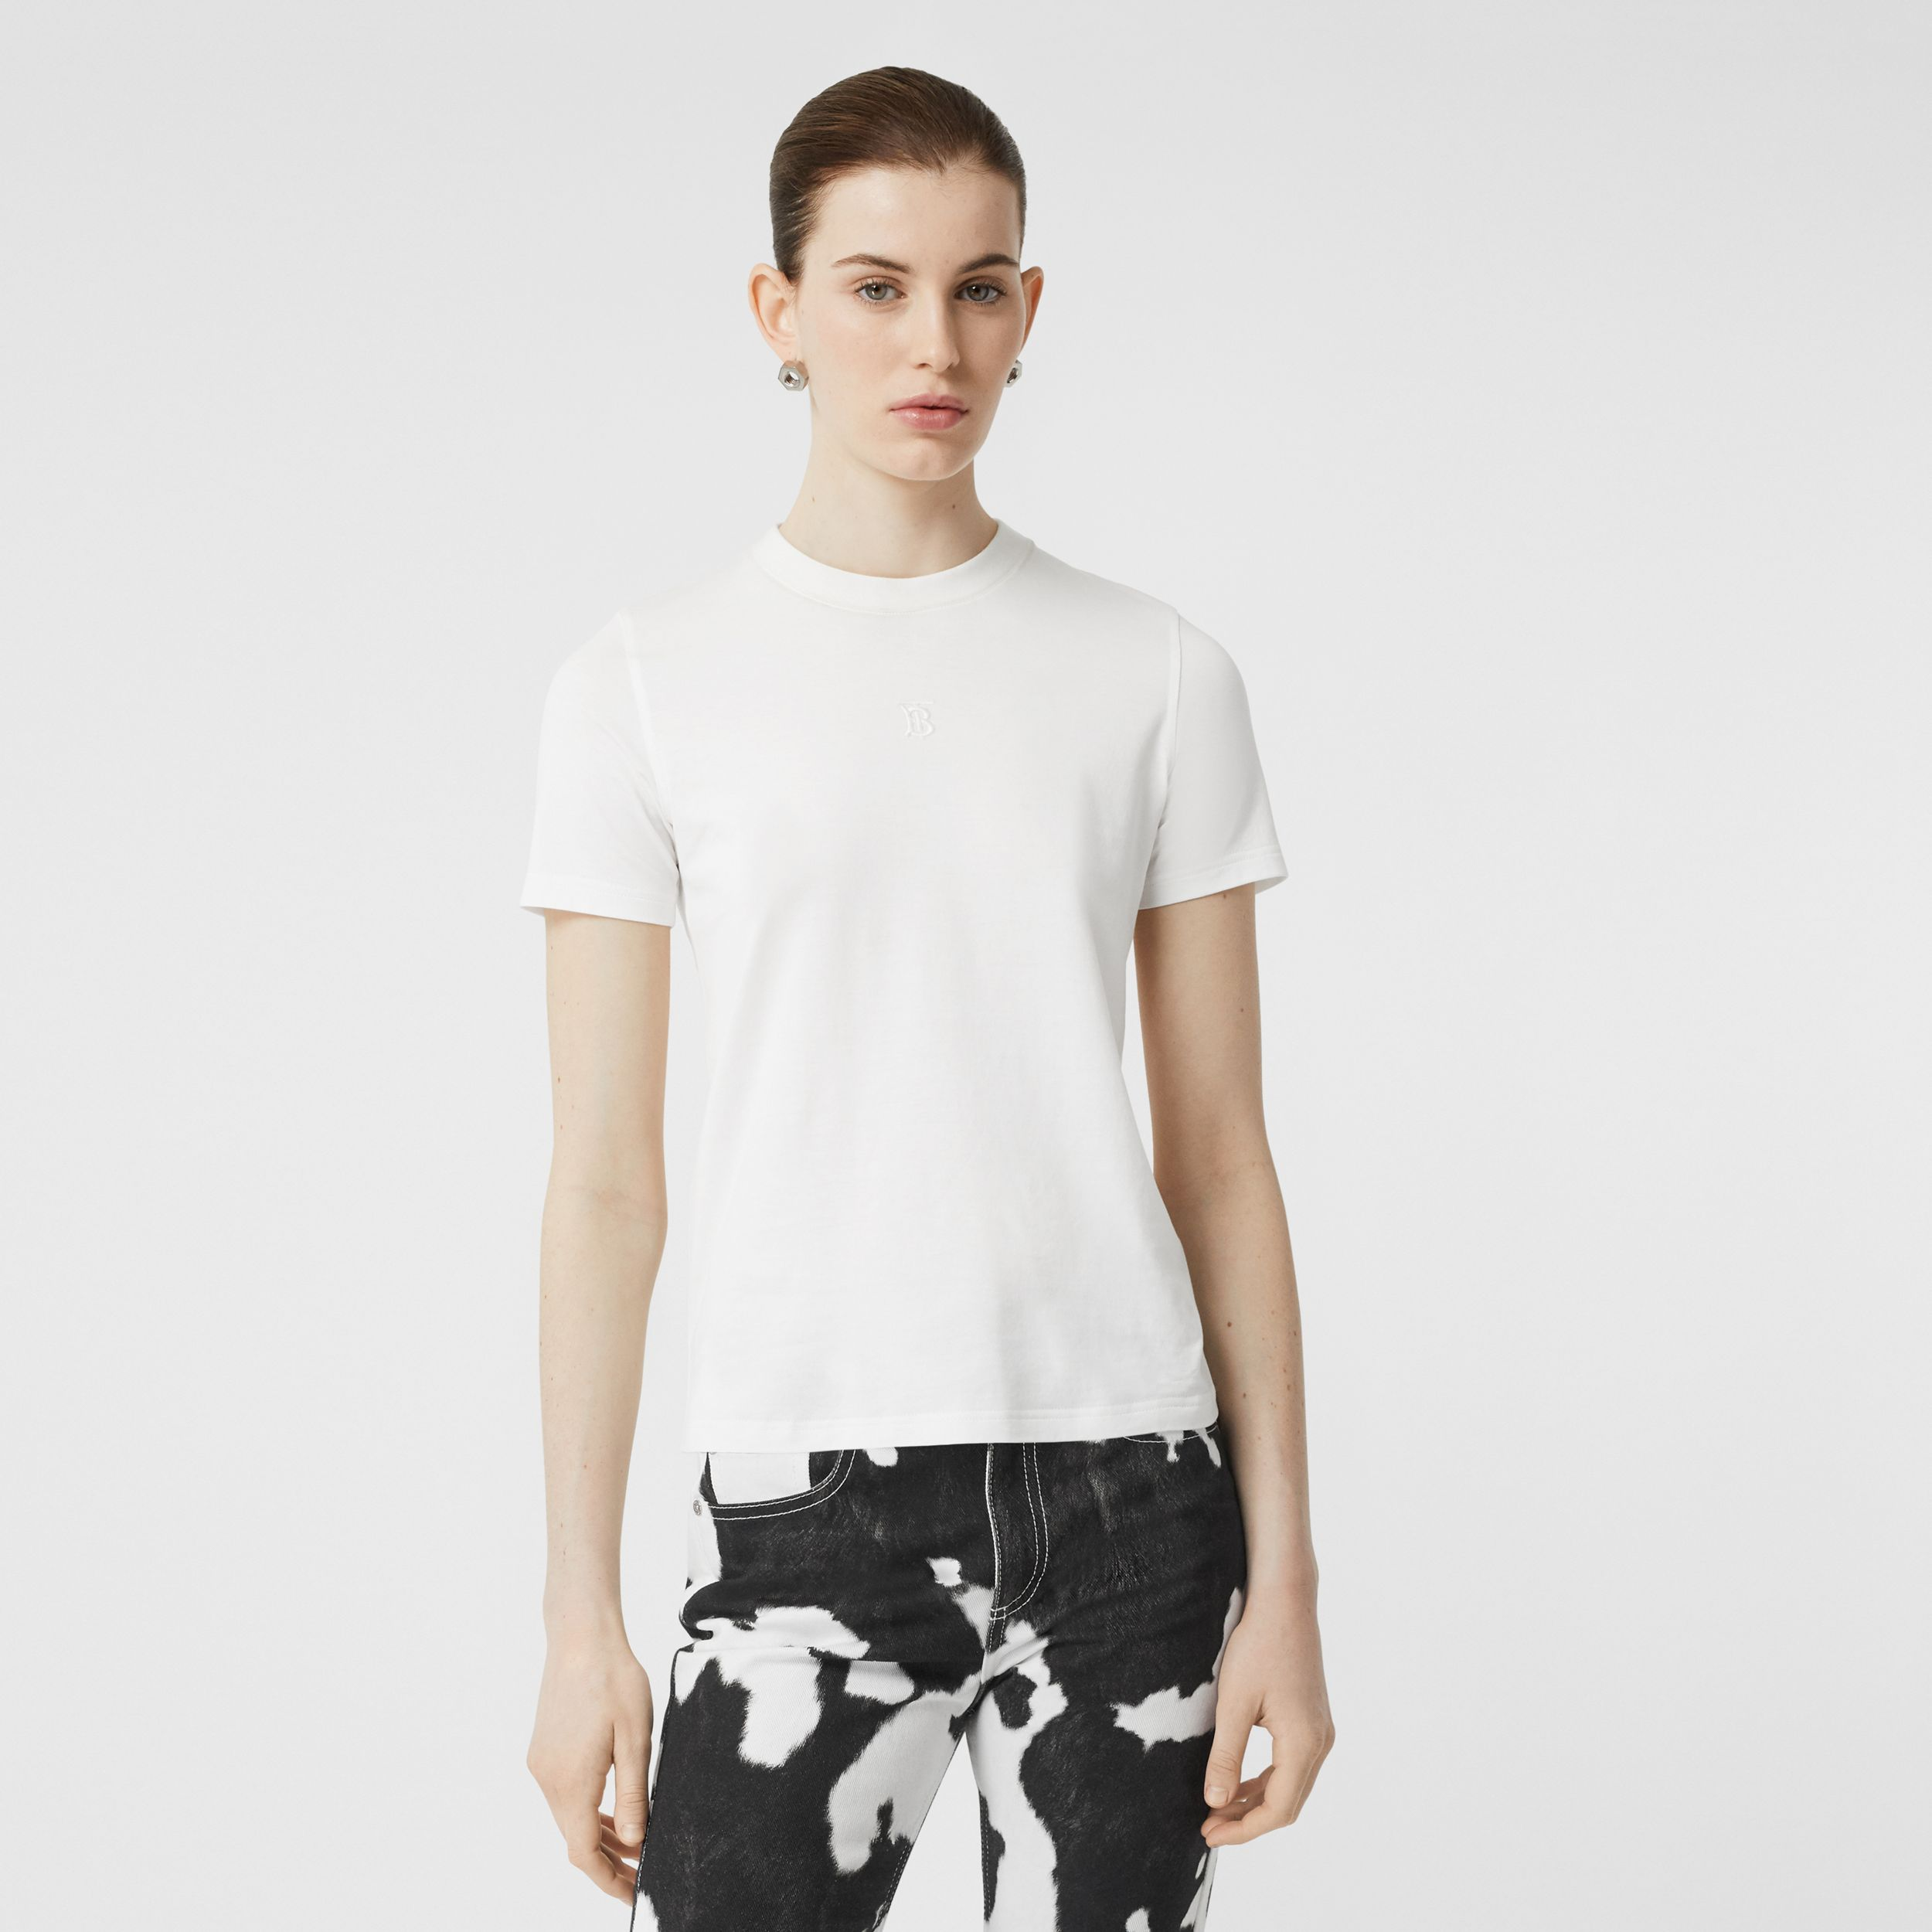 Monogram Motif Cotton T-shirt in White - Women | Burberry Australia - 1